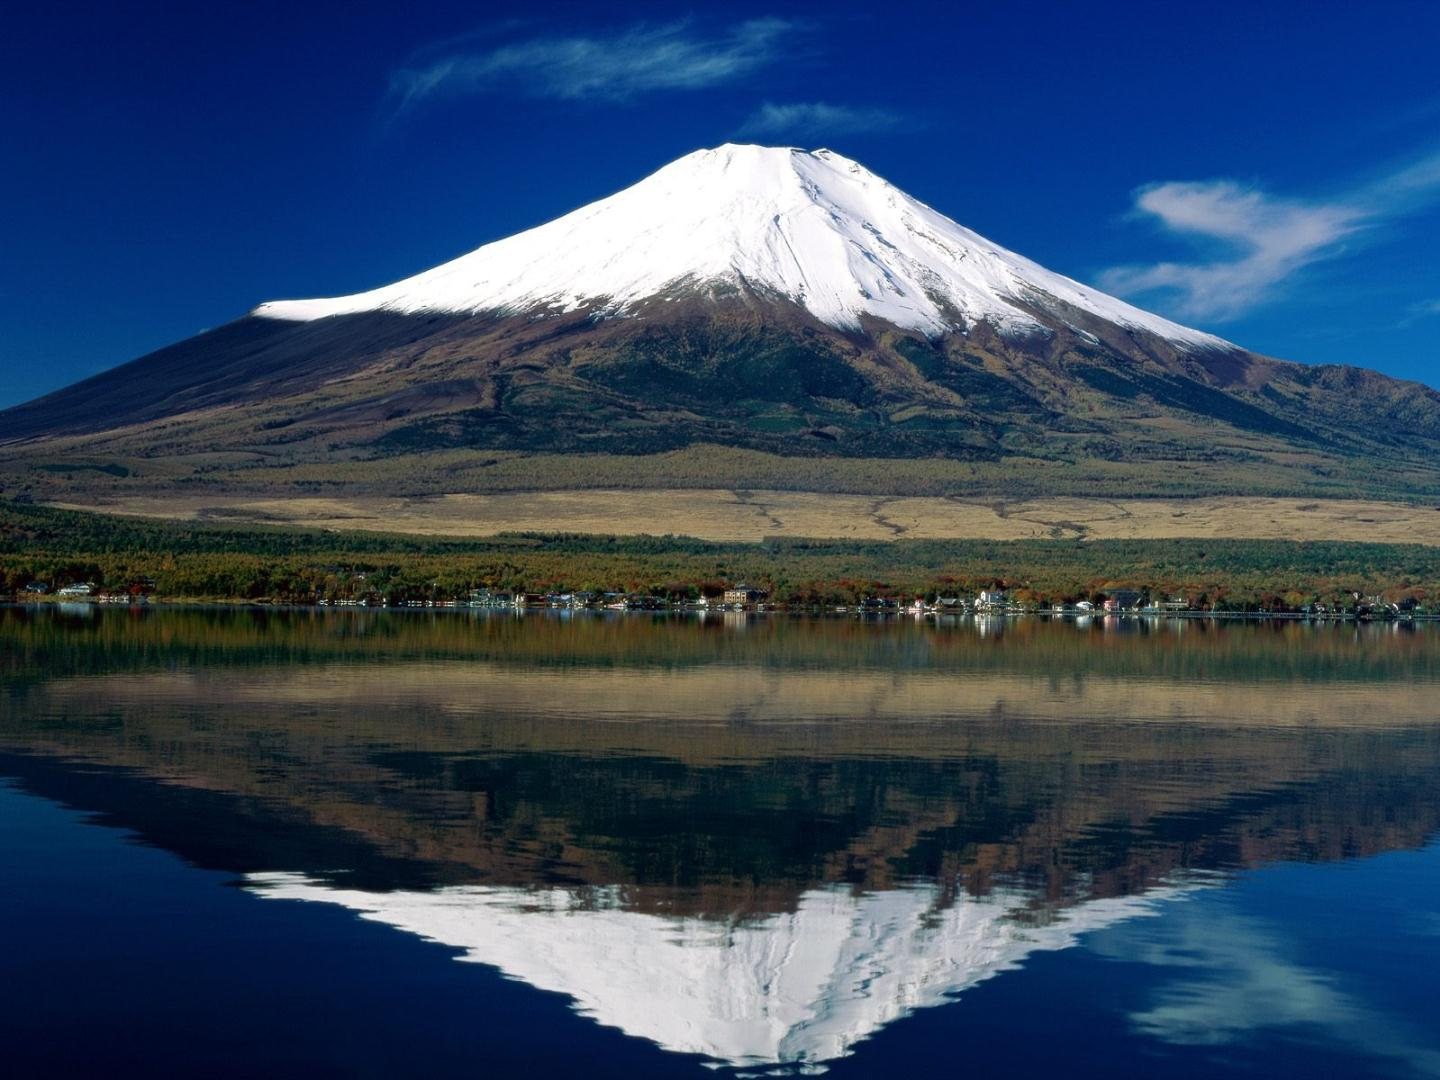 Mount Fuji Widescreen Wallpaper